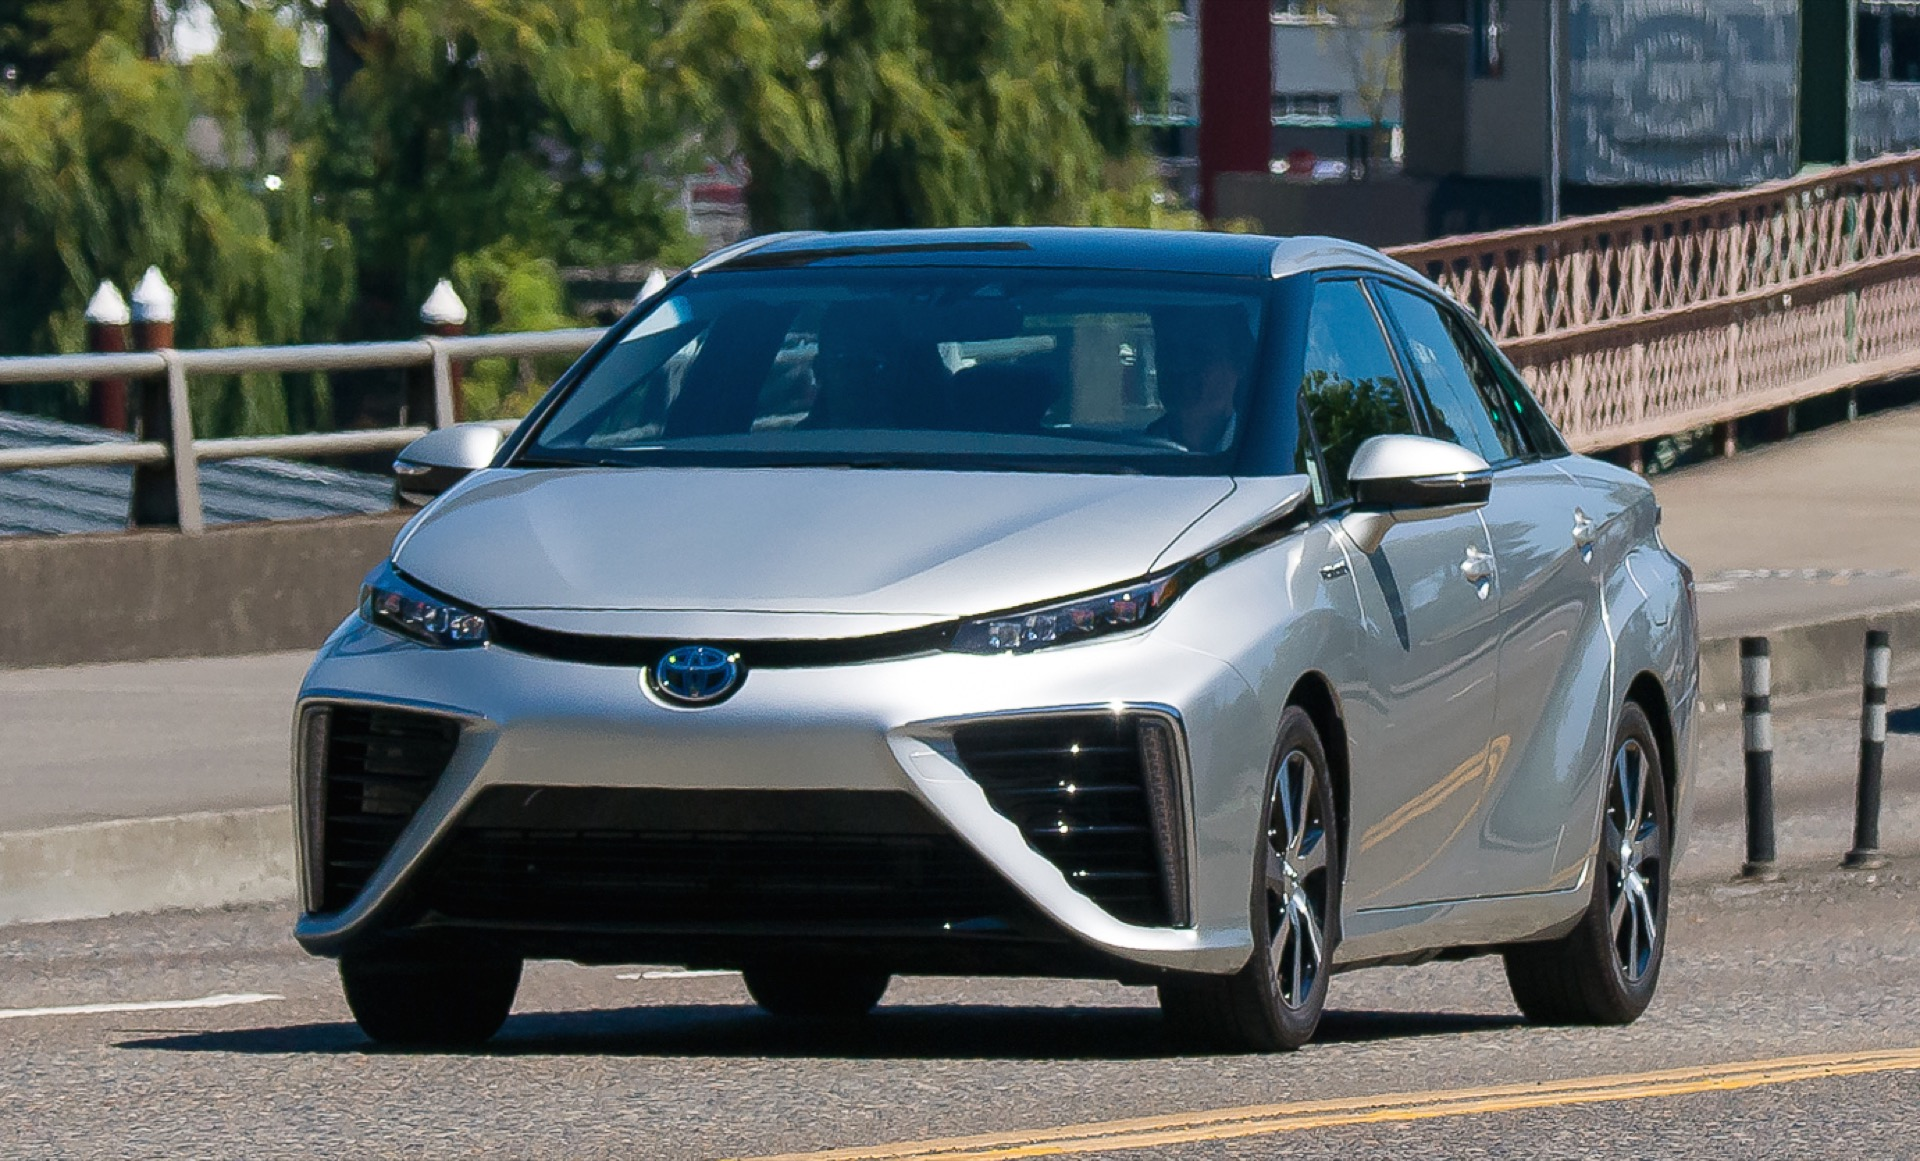 2018 F150 Review >> 2016 Toyota Mirai Hydrogen Fuel-Cell Car Runs On...Leftover Lemonade? Huh?